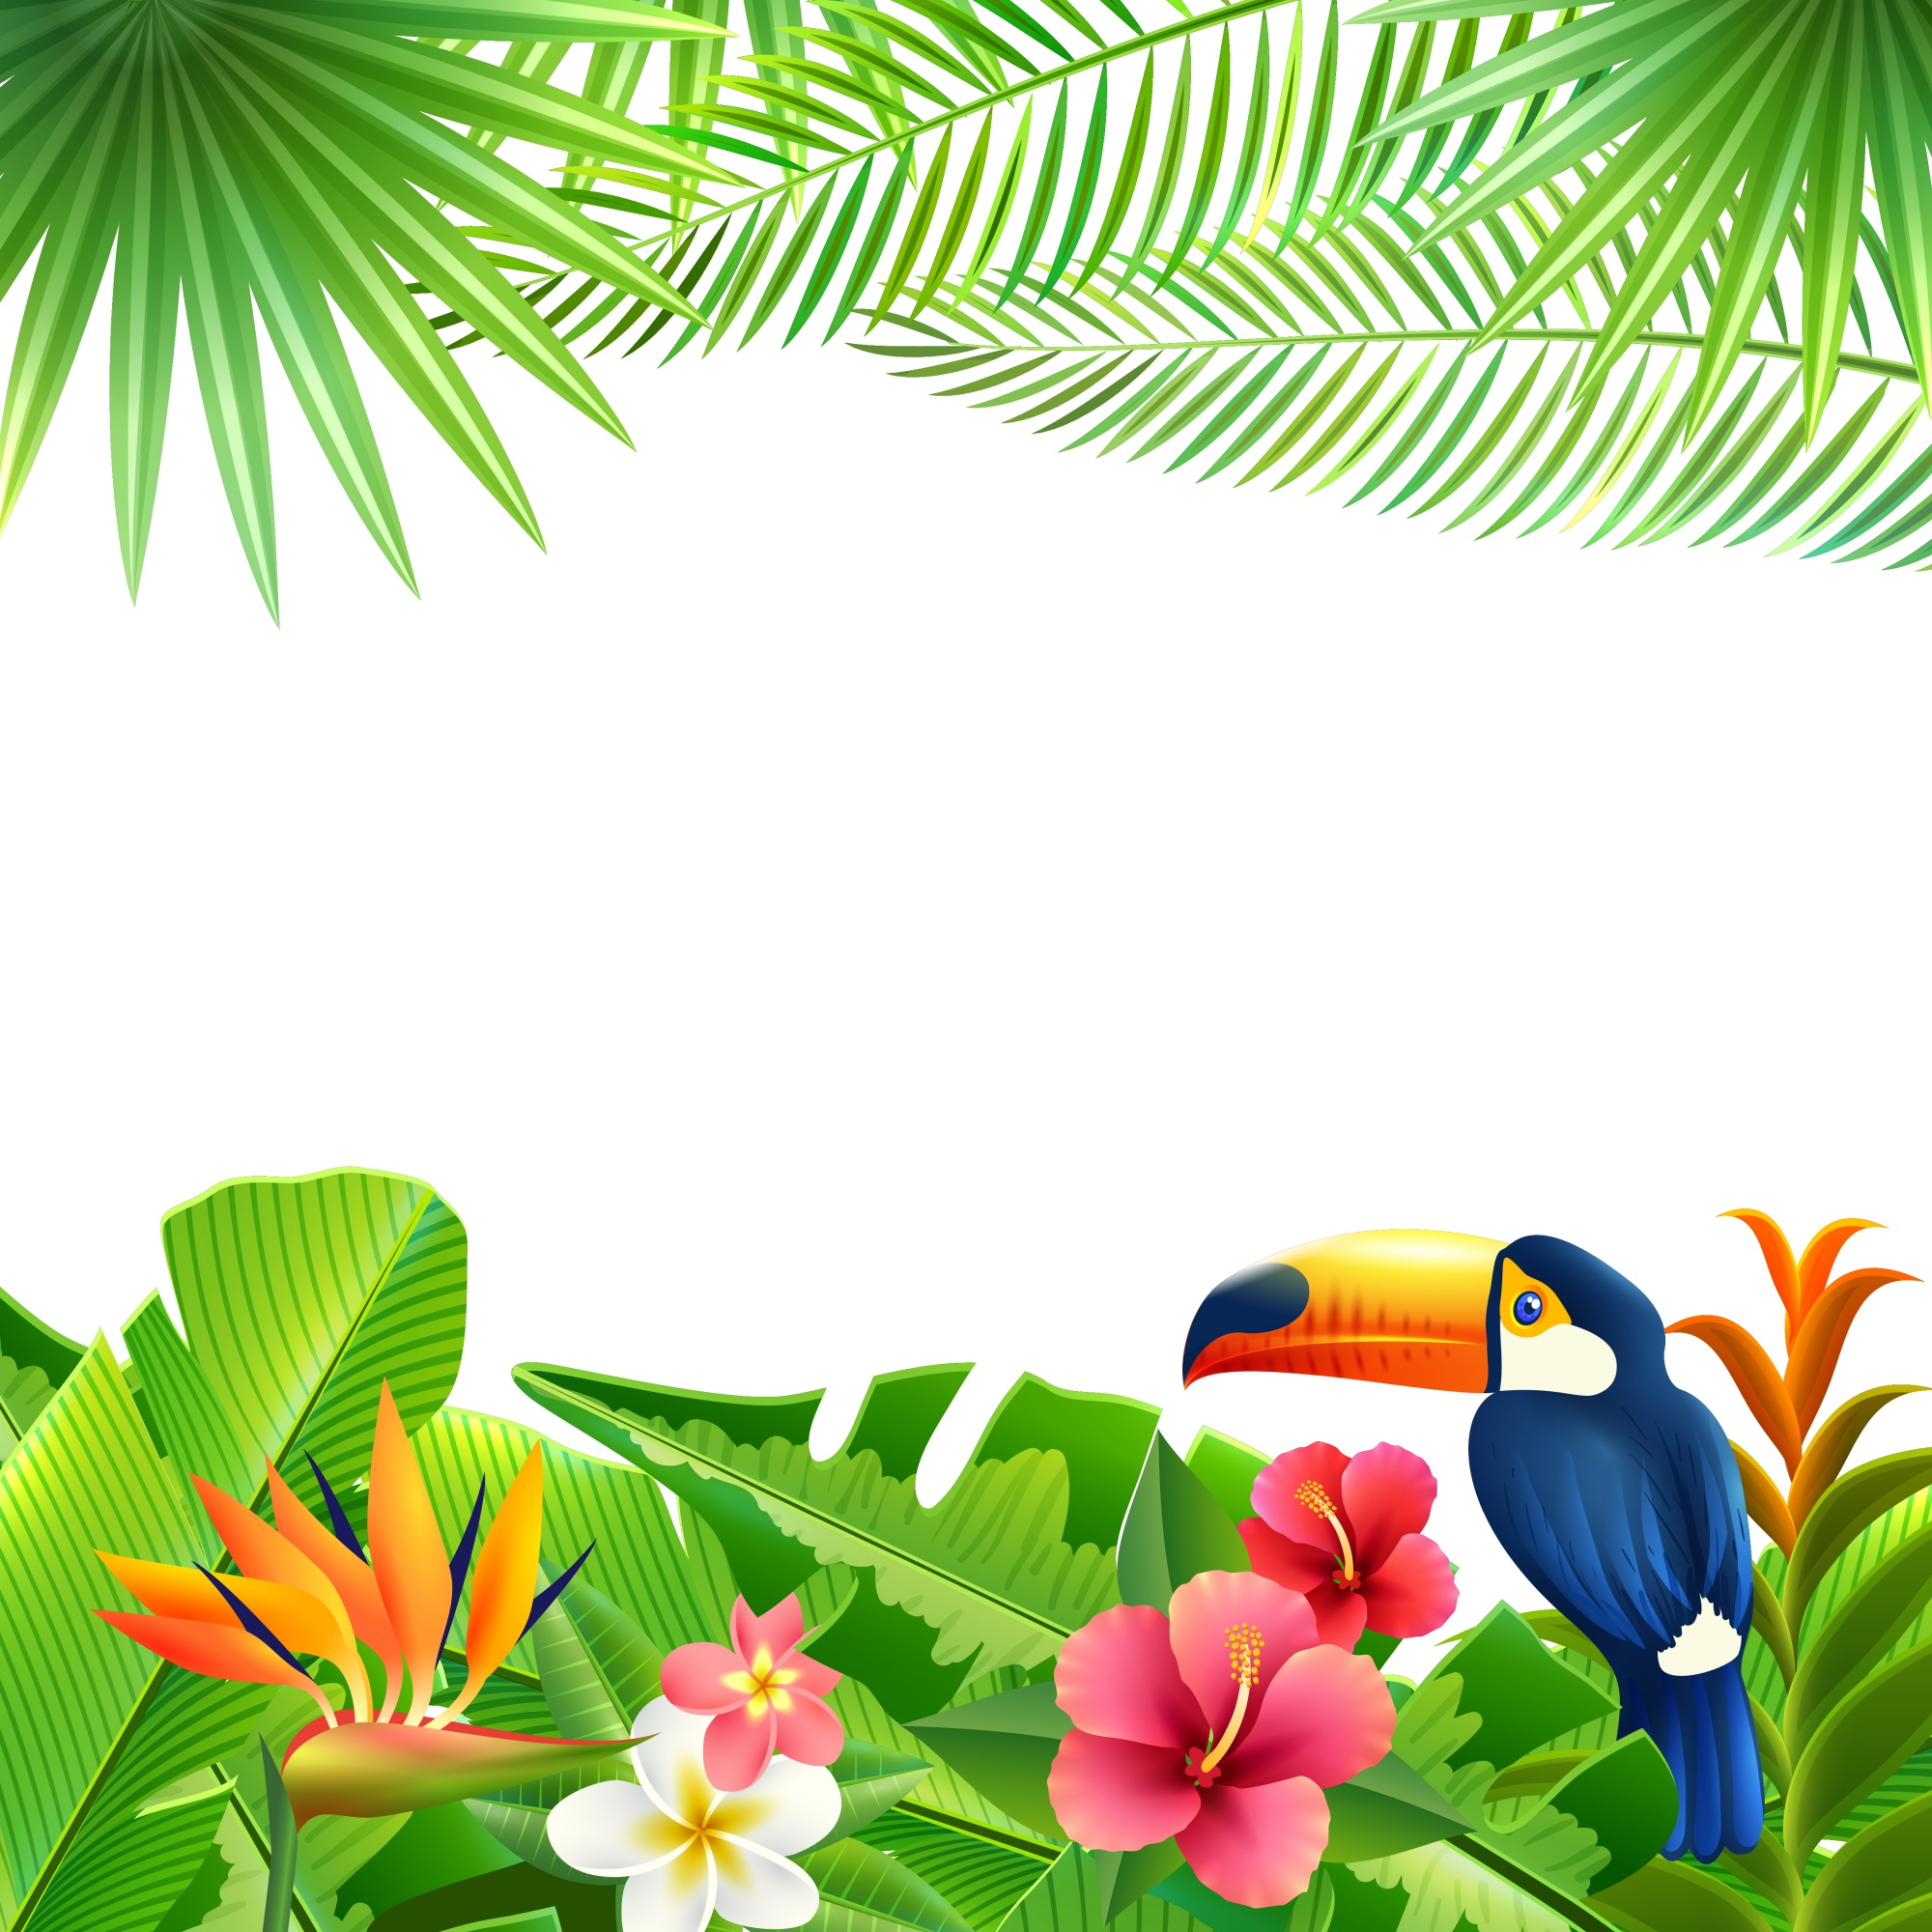 Tropical Landscape Background